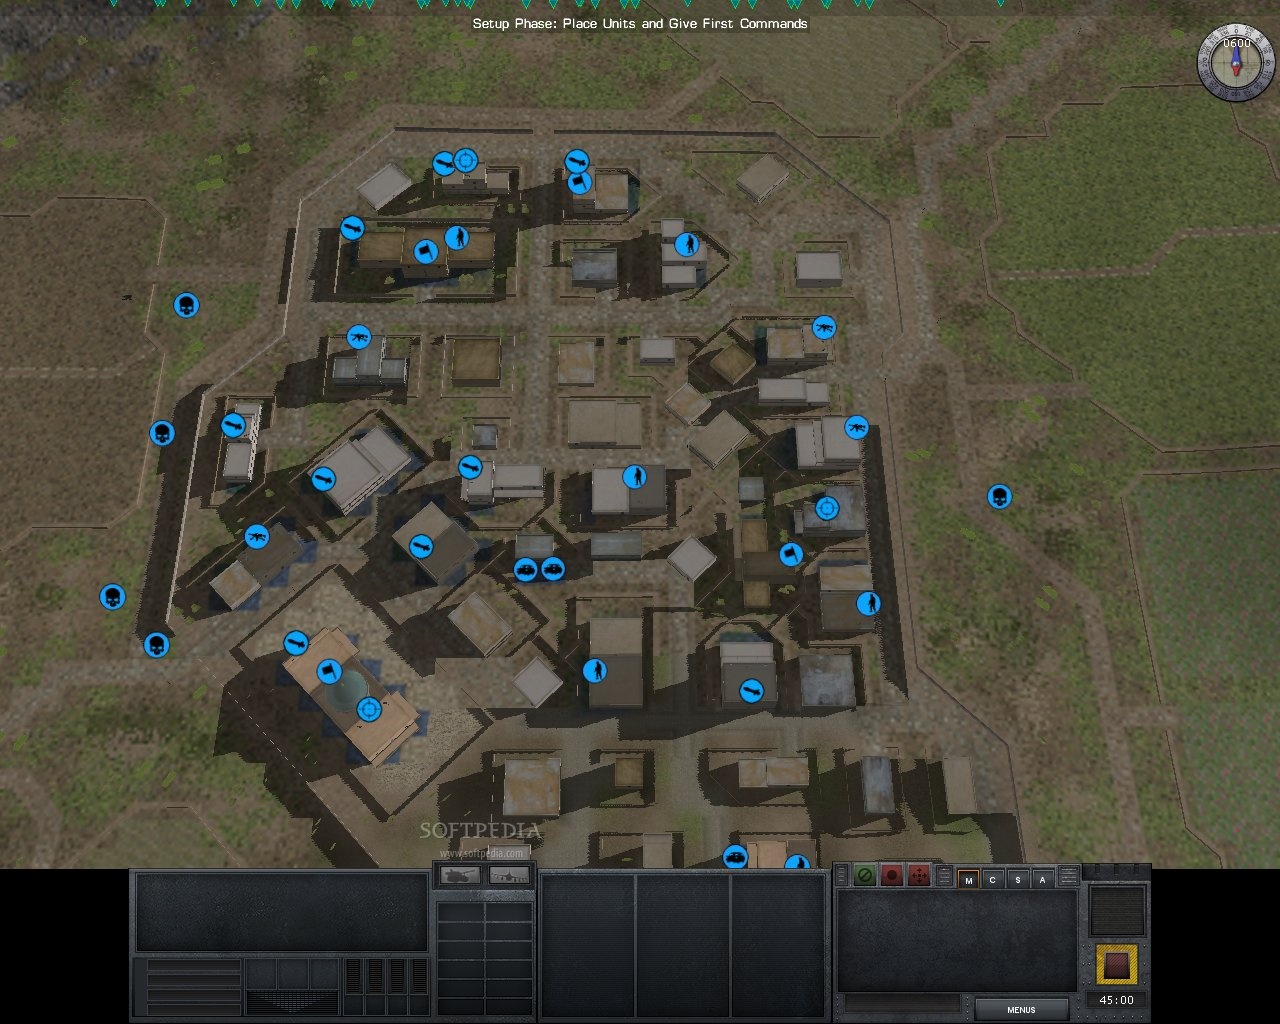 http://i1-games.softpedia-static.com/screenshots/Combat-Mission-Afghanistan-Patch_1.jpg